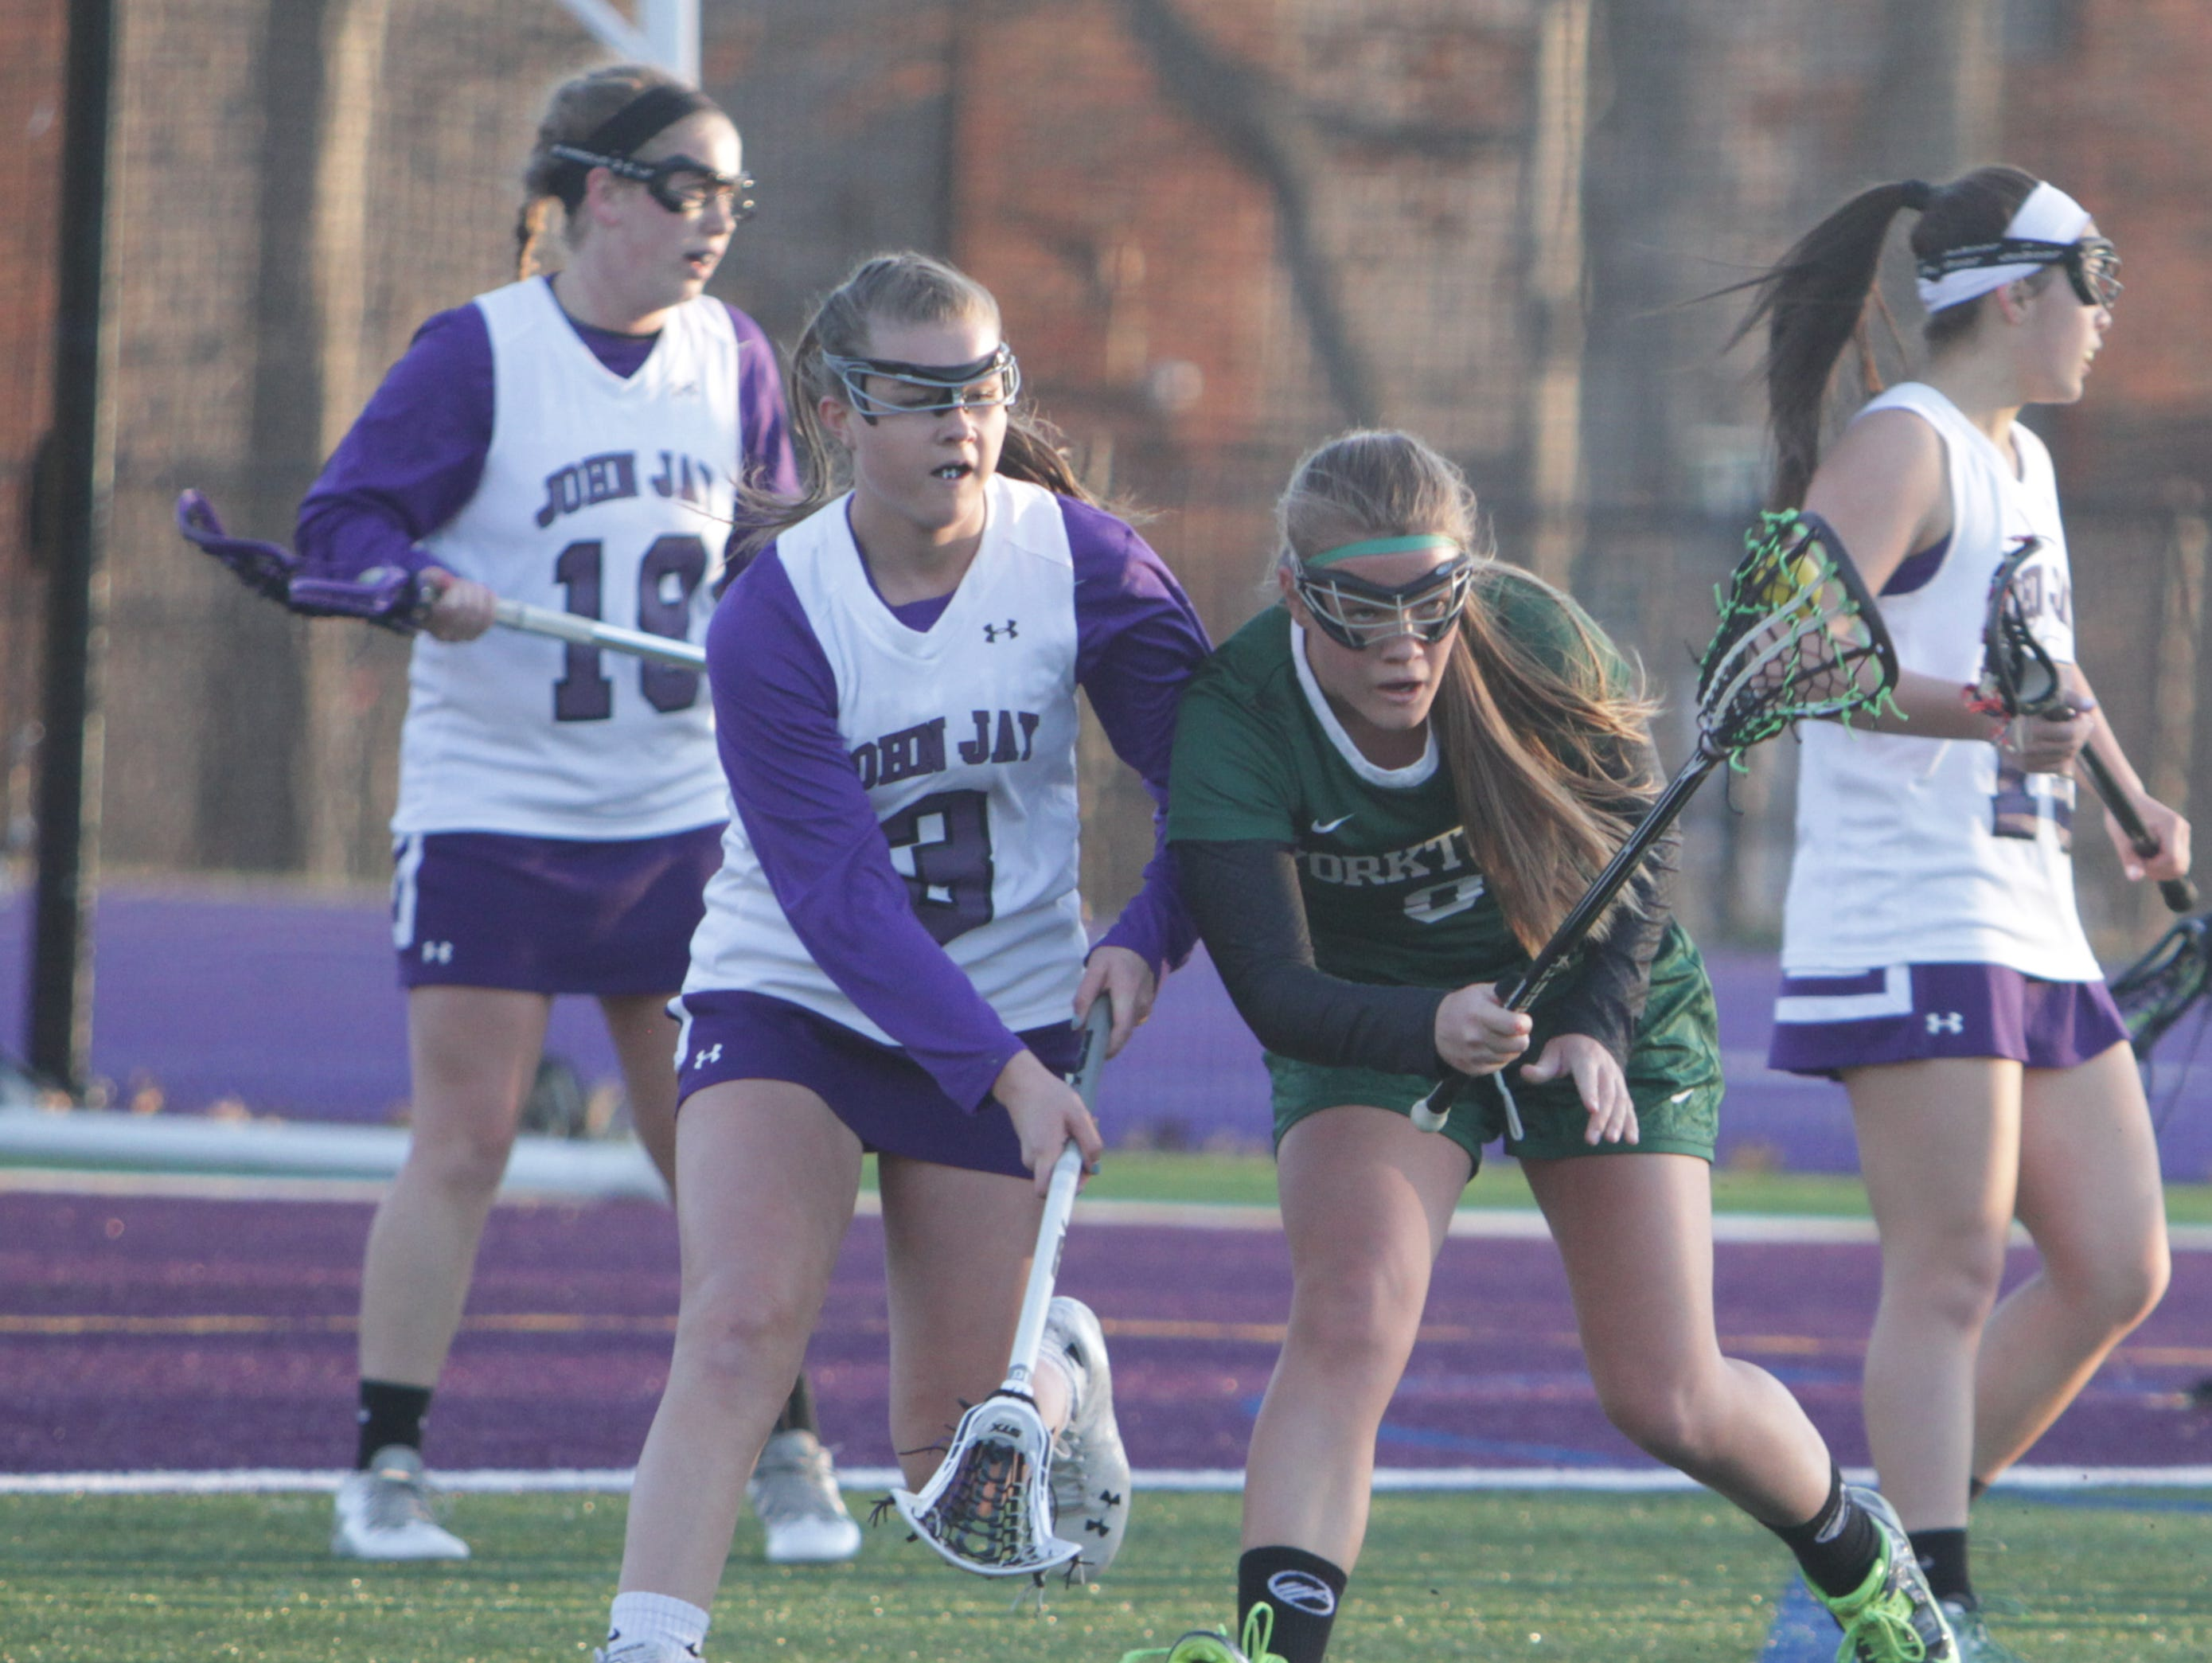 Game action during a Section 1 girls lacrosse game between John Jay and Yorktown at John Jay-Cross River High School on Tuesday, March 29th, 2016. Yorktown won 15-5.